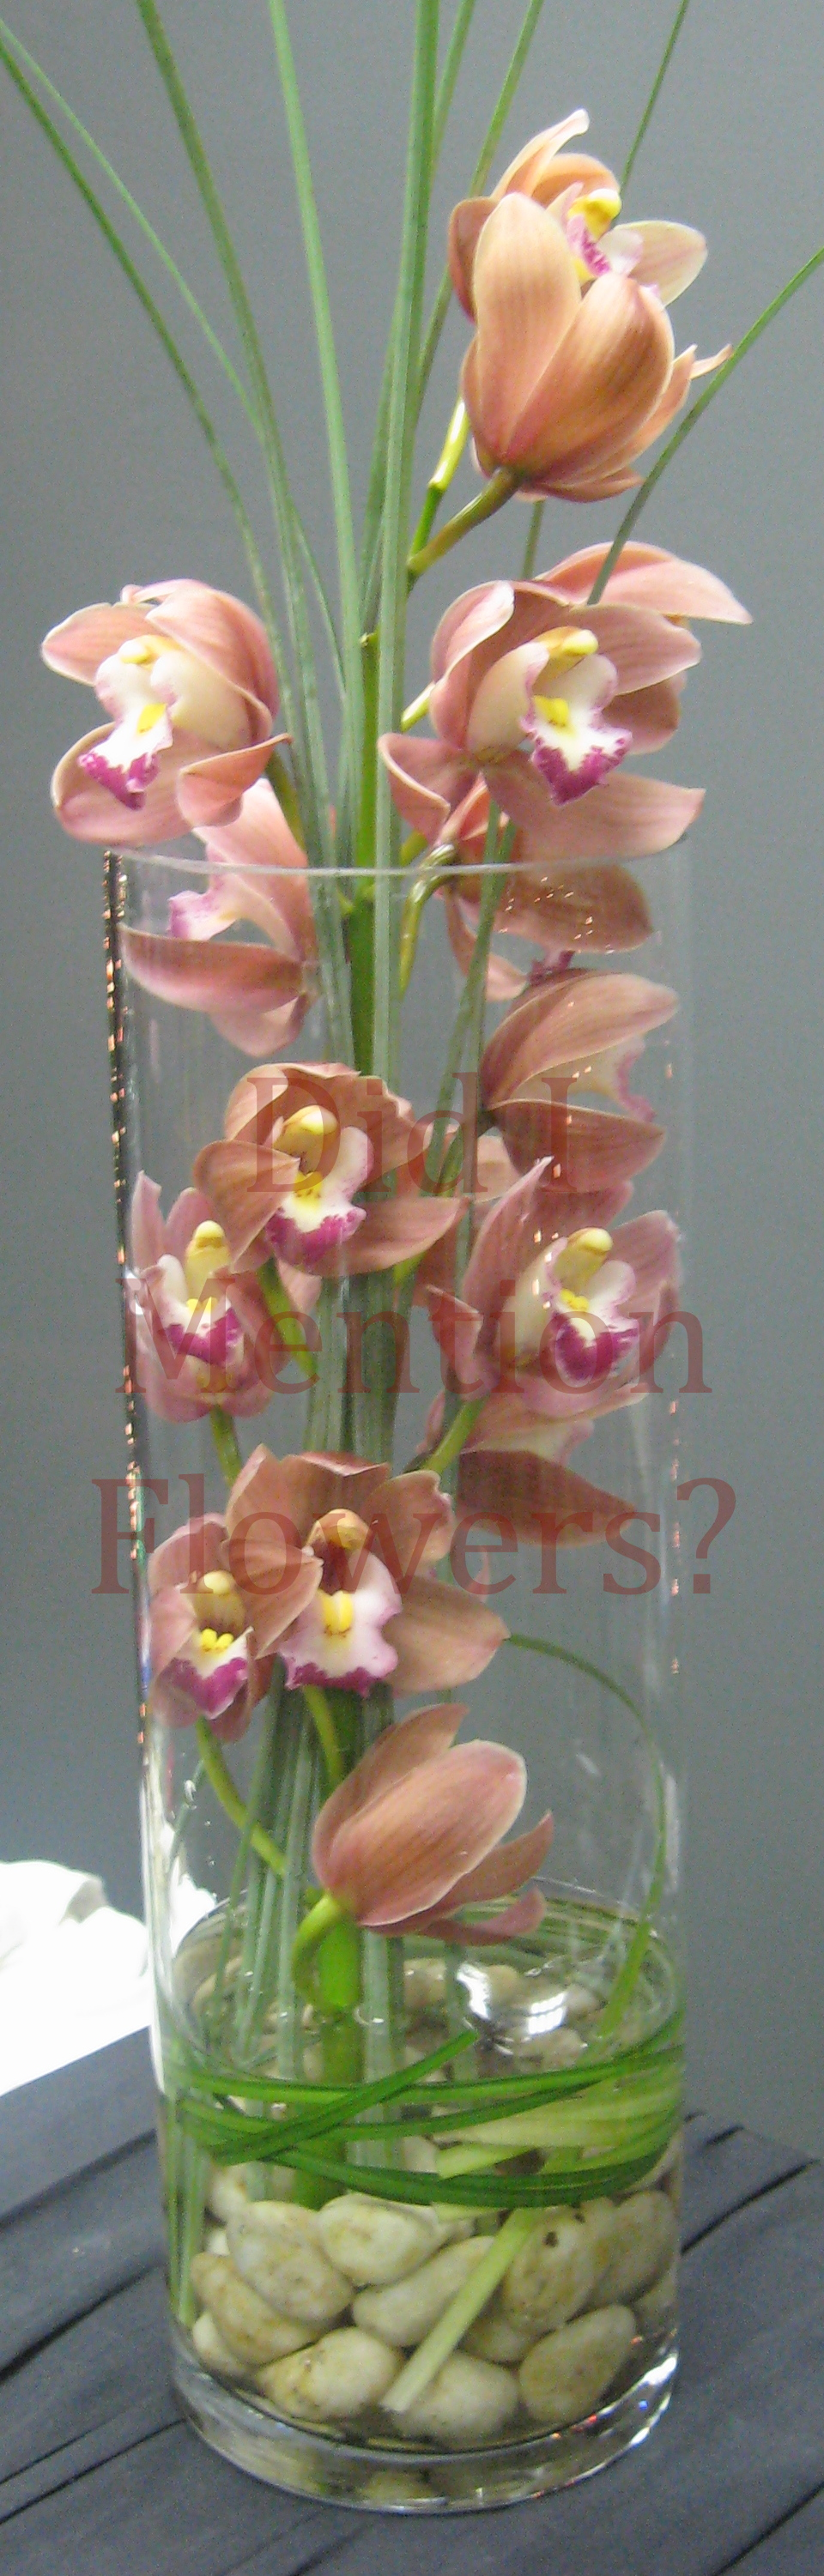 15 - Mini Cymbidium Orchid Vase Arrange.